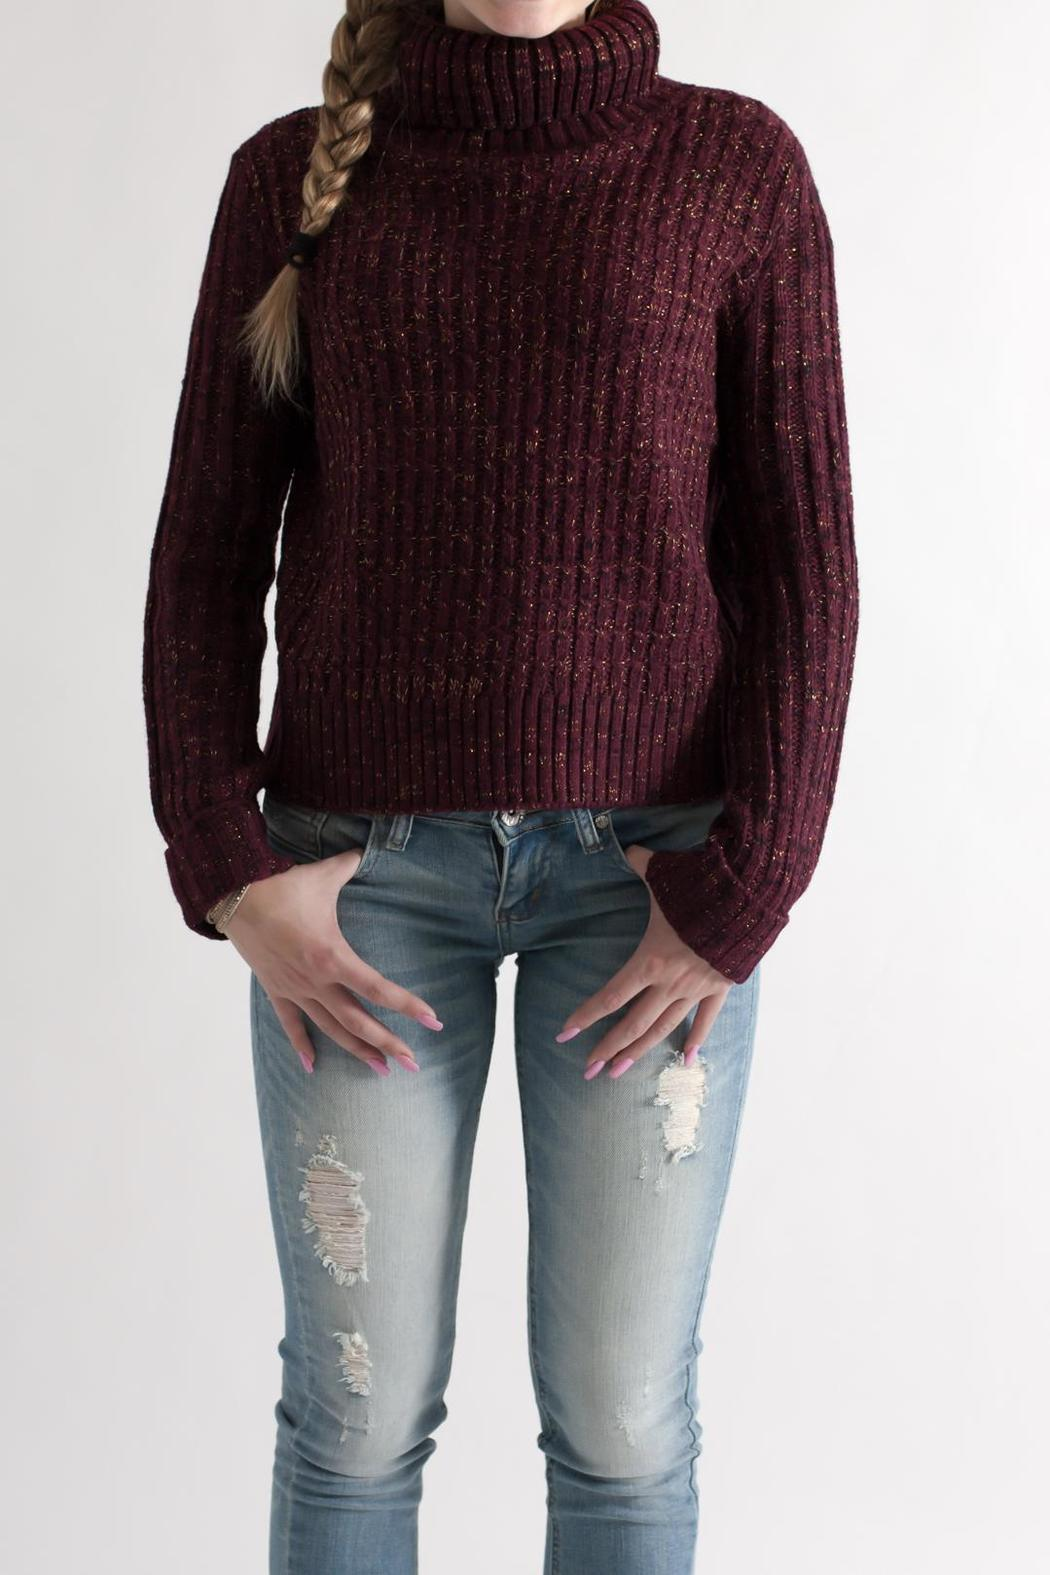 She   Sky Cropped Turtleneck Sweater from Philadelphia by May 23 ...